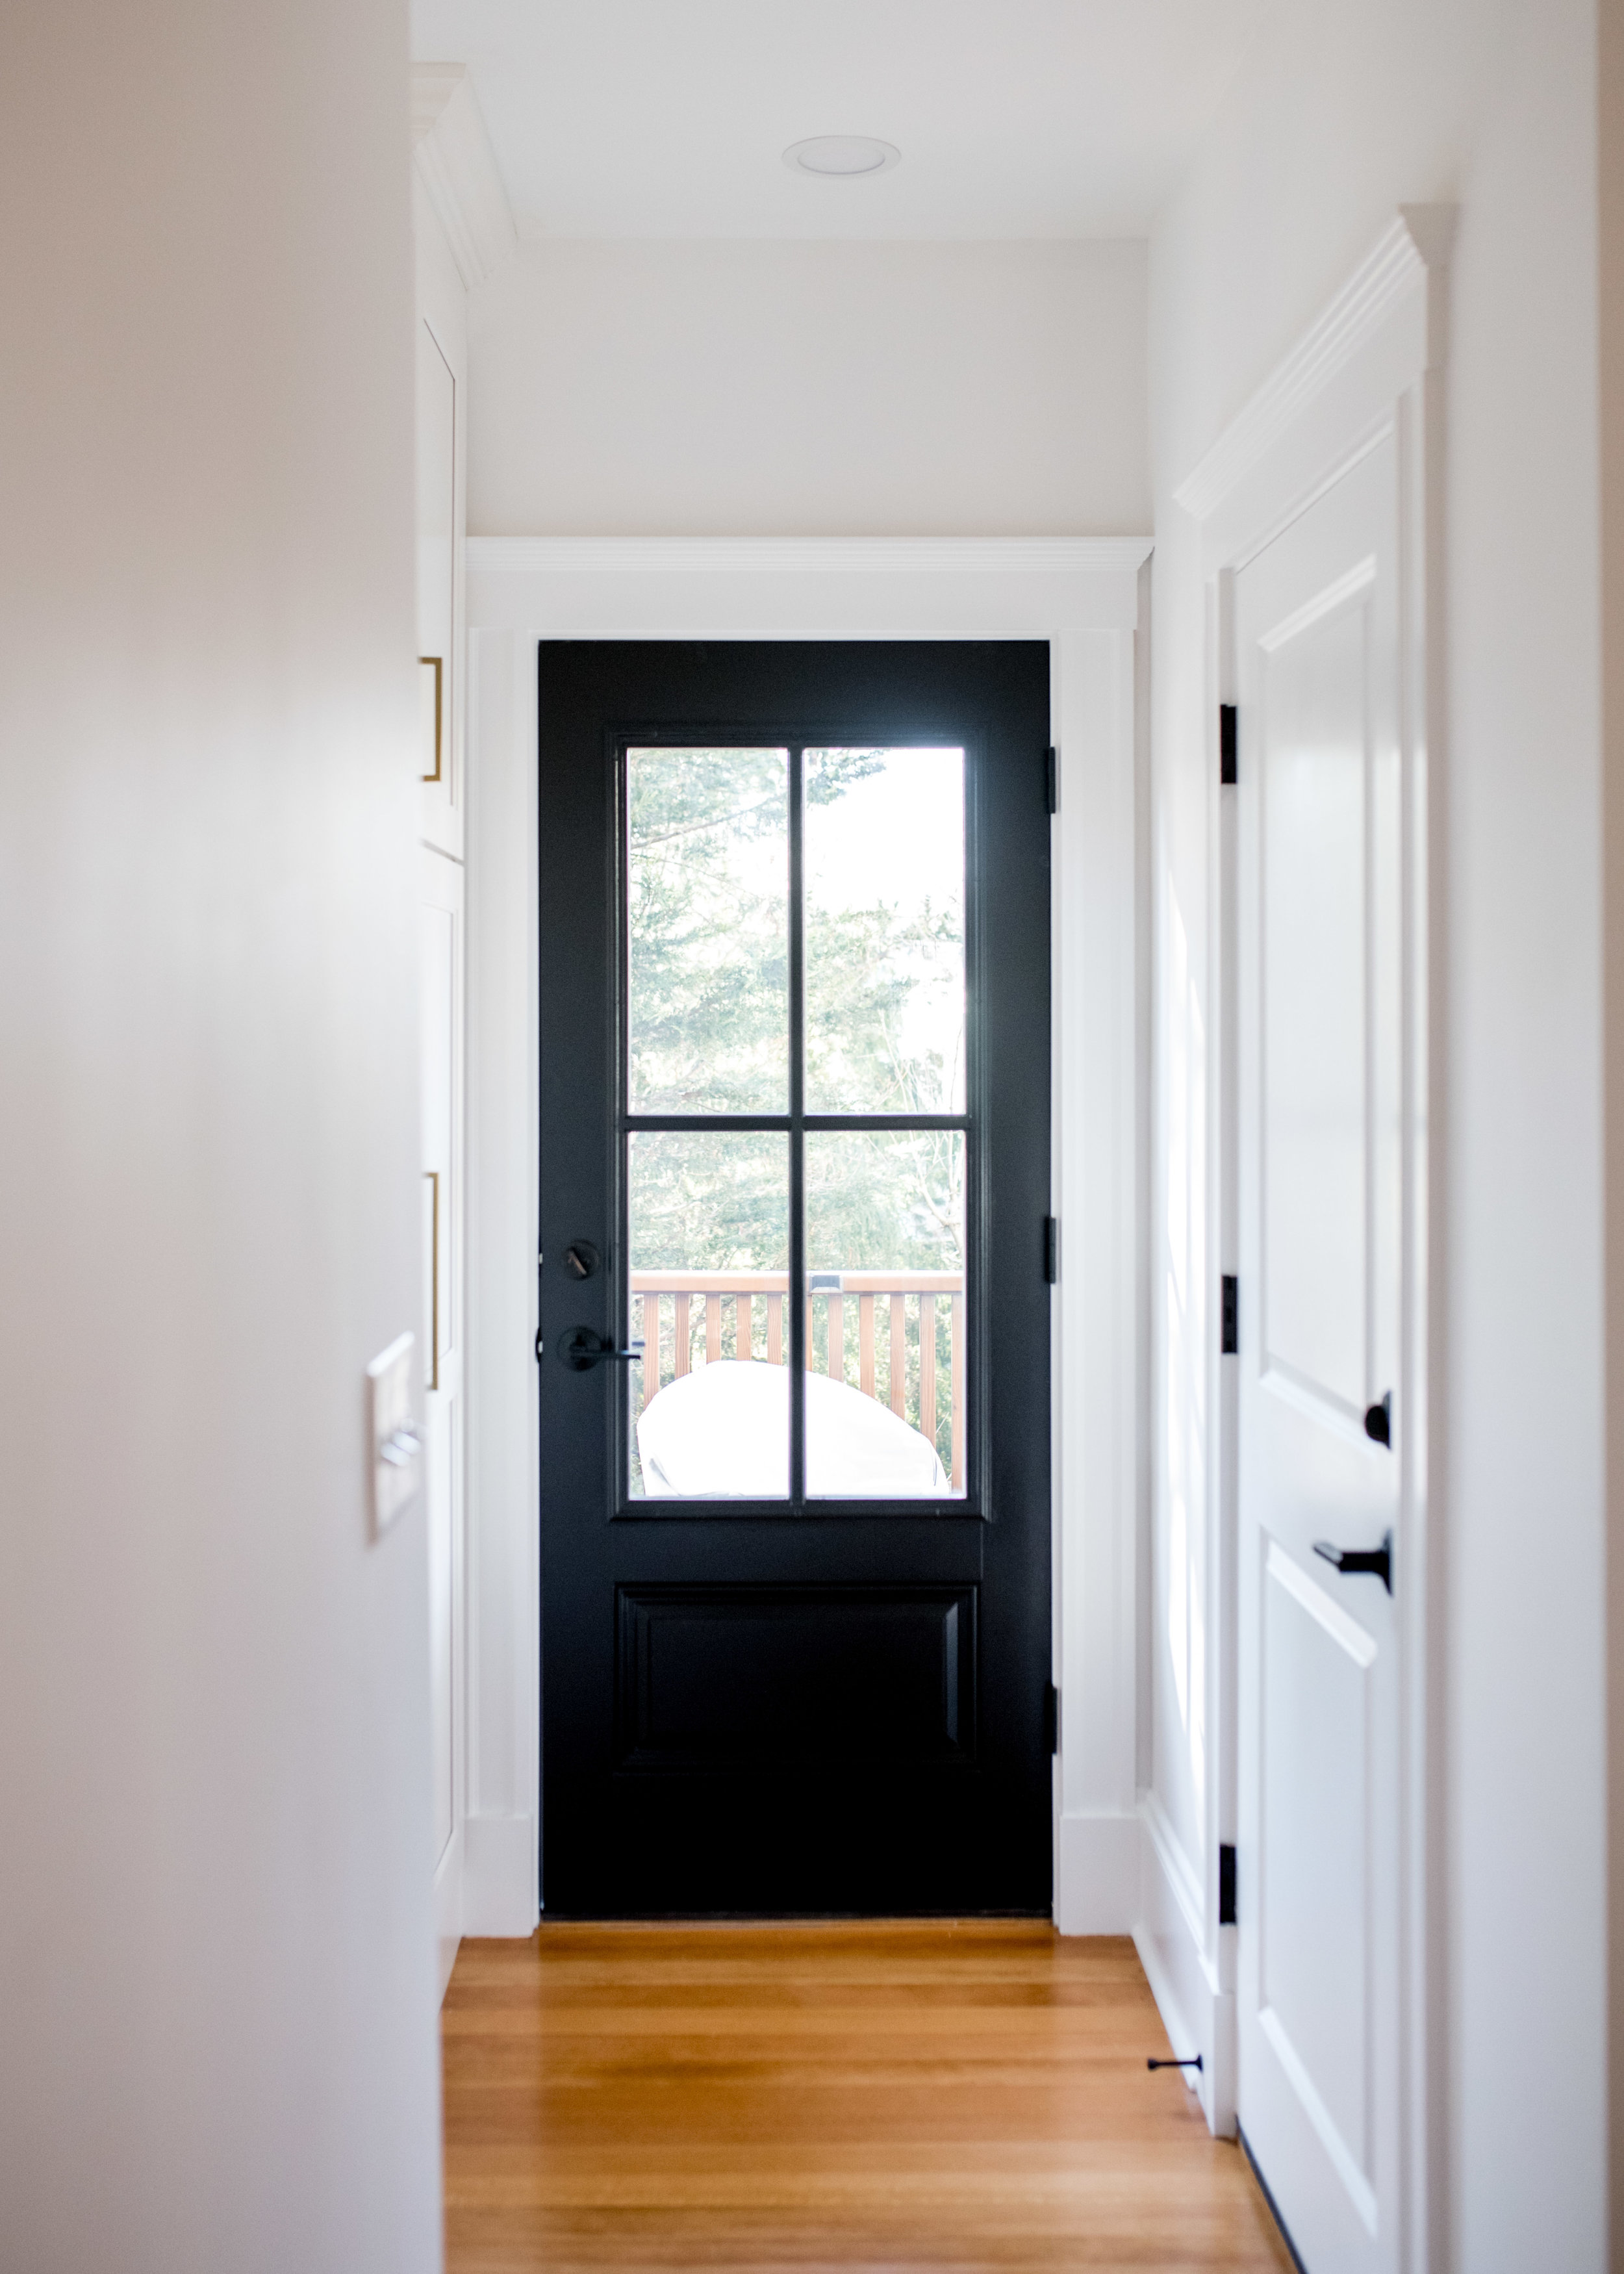 moved door to common hallway to open up the space